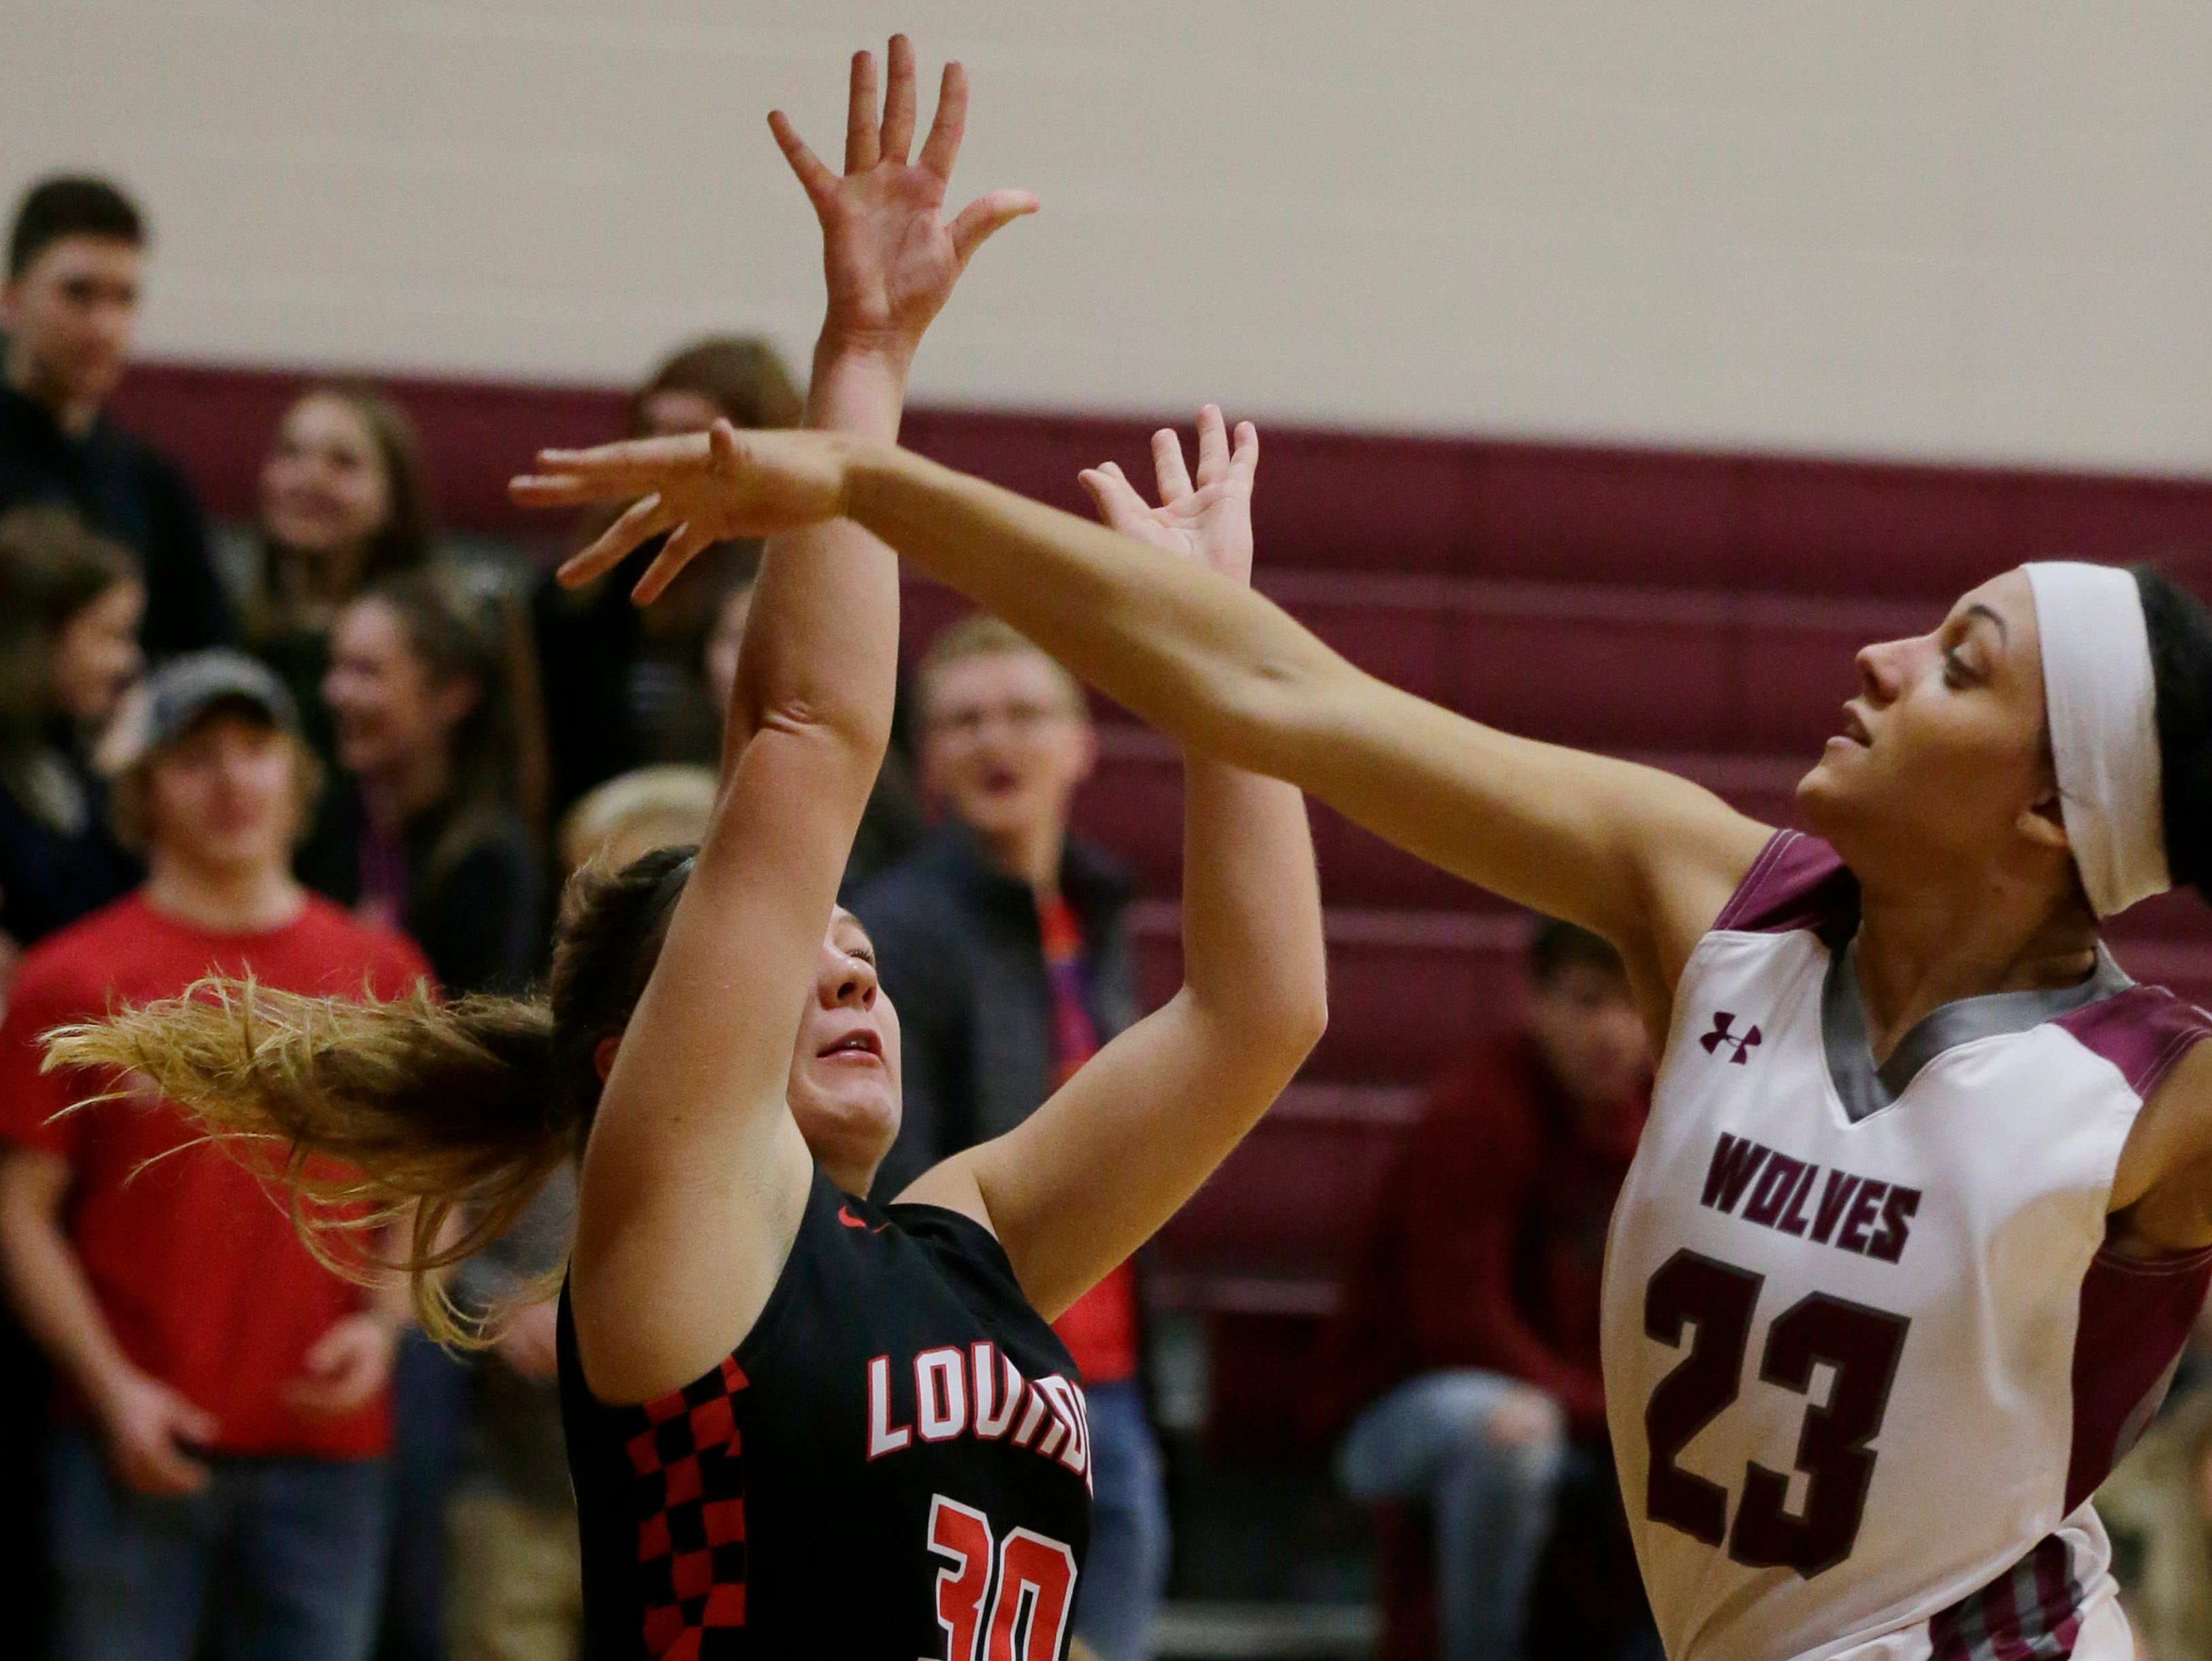 Lourdes Academy's Hope Burns gets a shot blocked by Winneconne's Airika Szafranek during the first half.  Winneconne Wolves played Lourdes Academy Knights, Tuesday, Dec. 11, 2018.  Winneconne won 56 - 44.